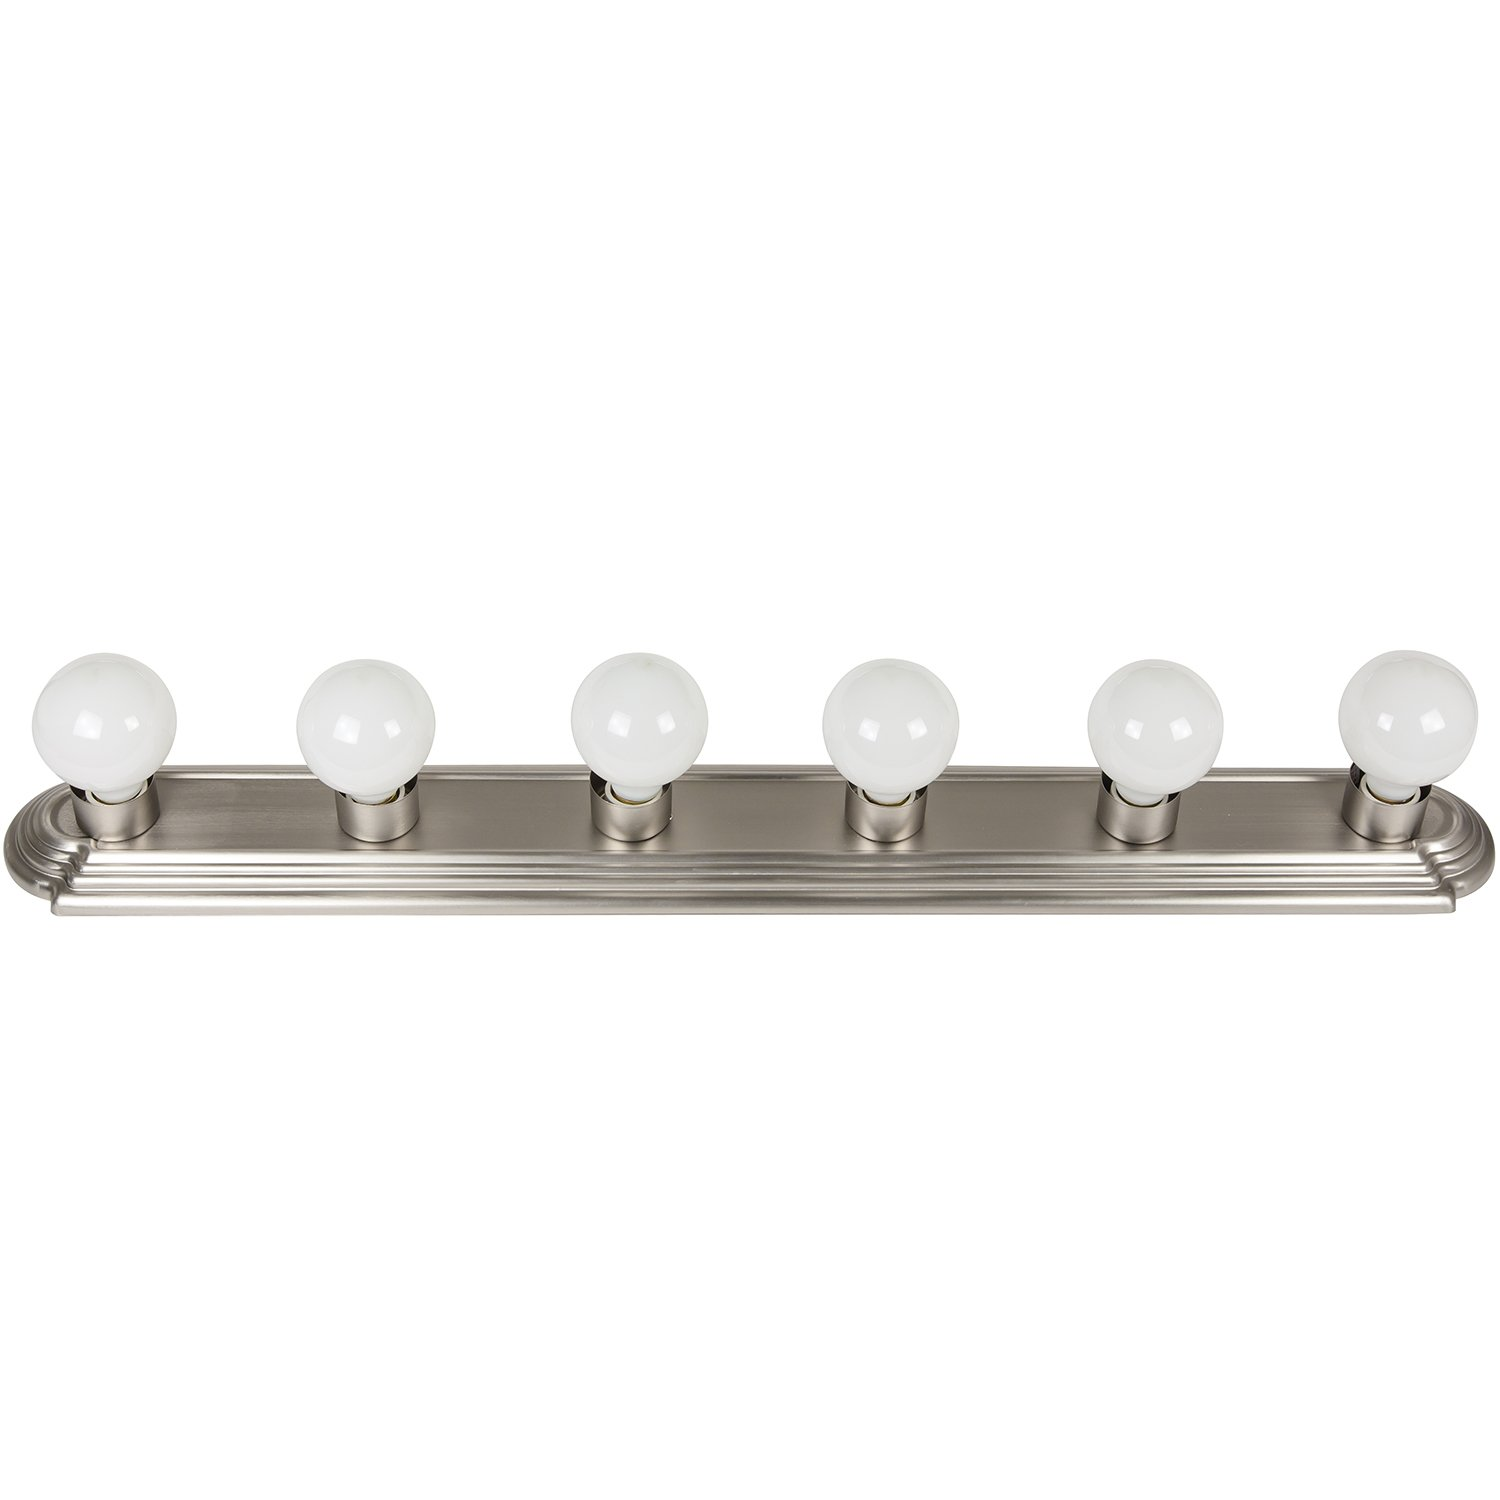 Amazon.com: Sunlite B636/BN 36-Inch 6-Bulb Bathroom Vanity Wall ...